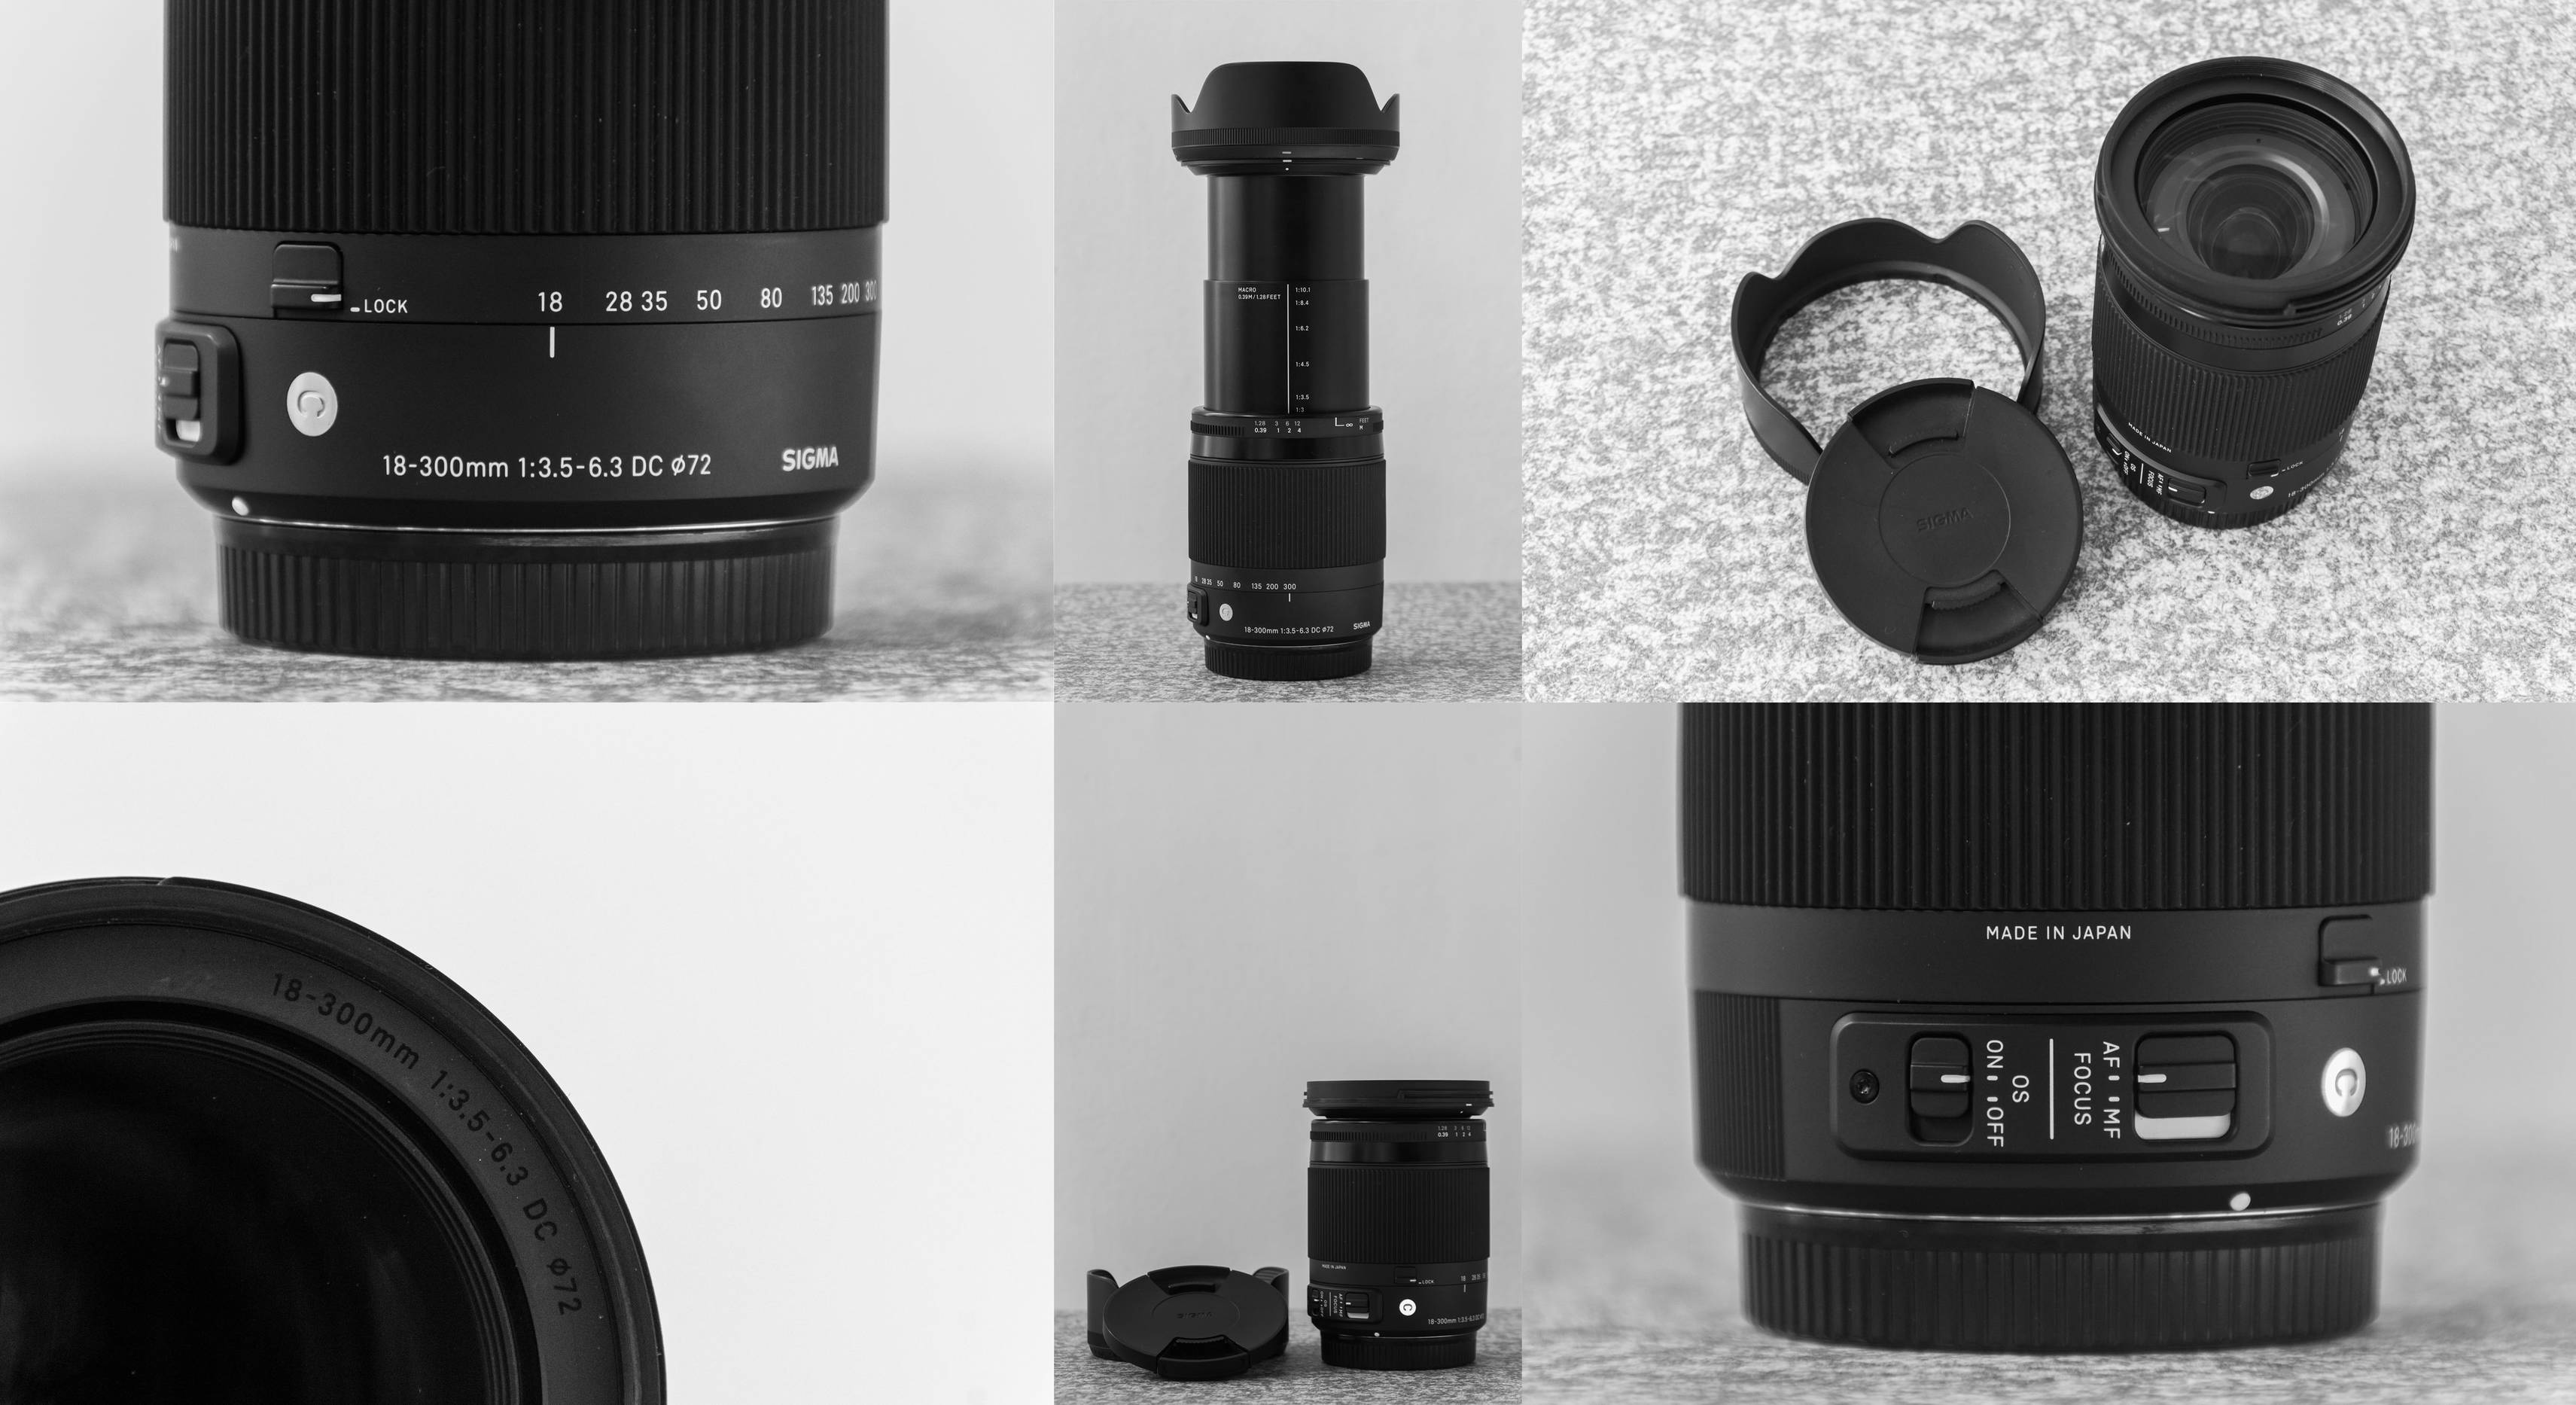 Sigma 18-300mm lens review by Clifford Wort on Orms Connect Photography Blog South Africa